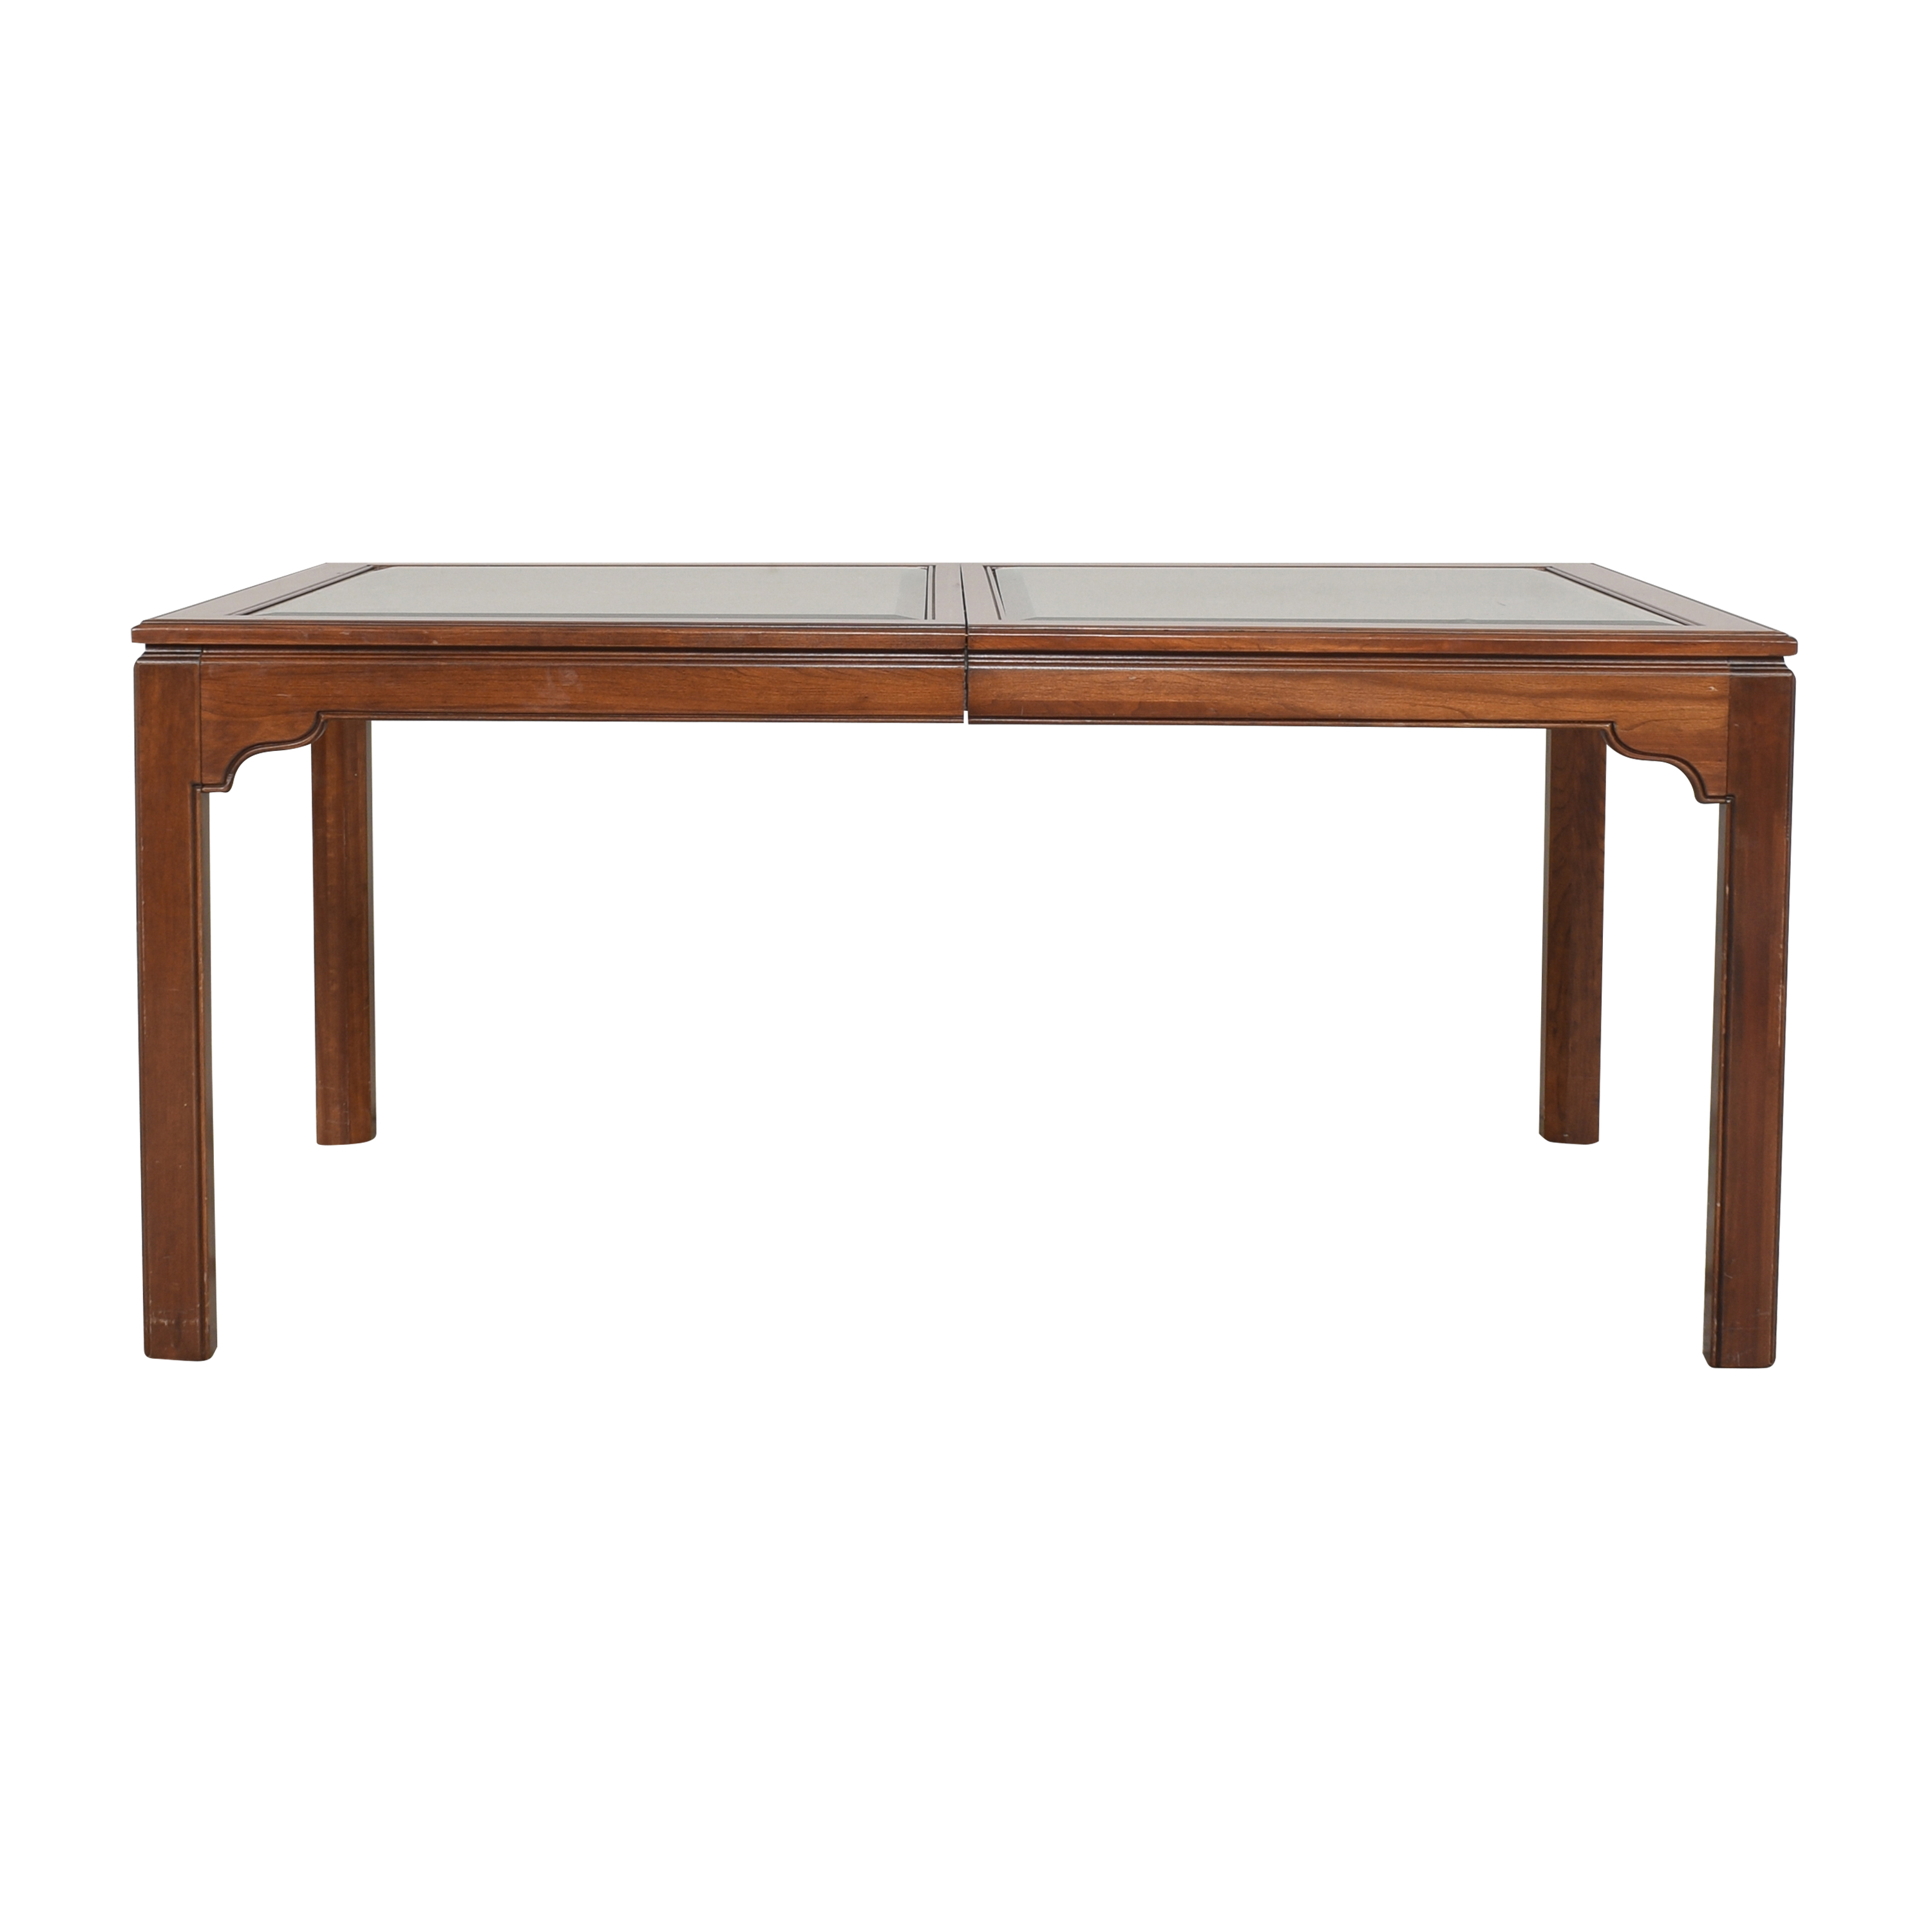 Ethan Allen Ethan Allen Canova Campaign Extendable Dining Table  used